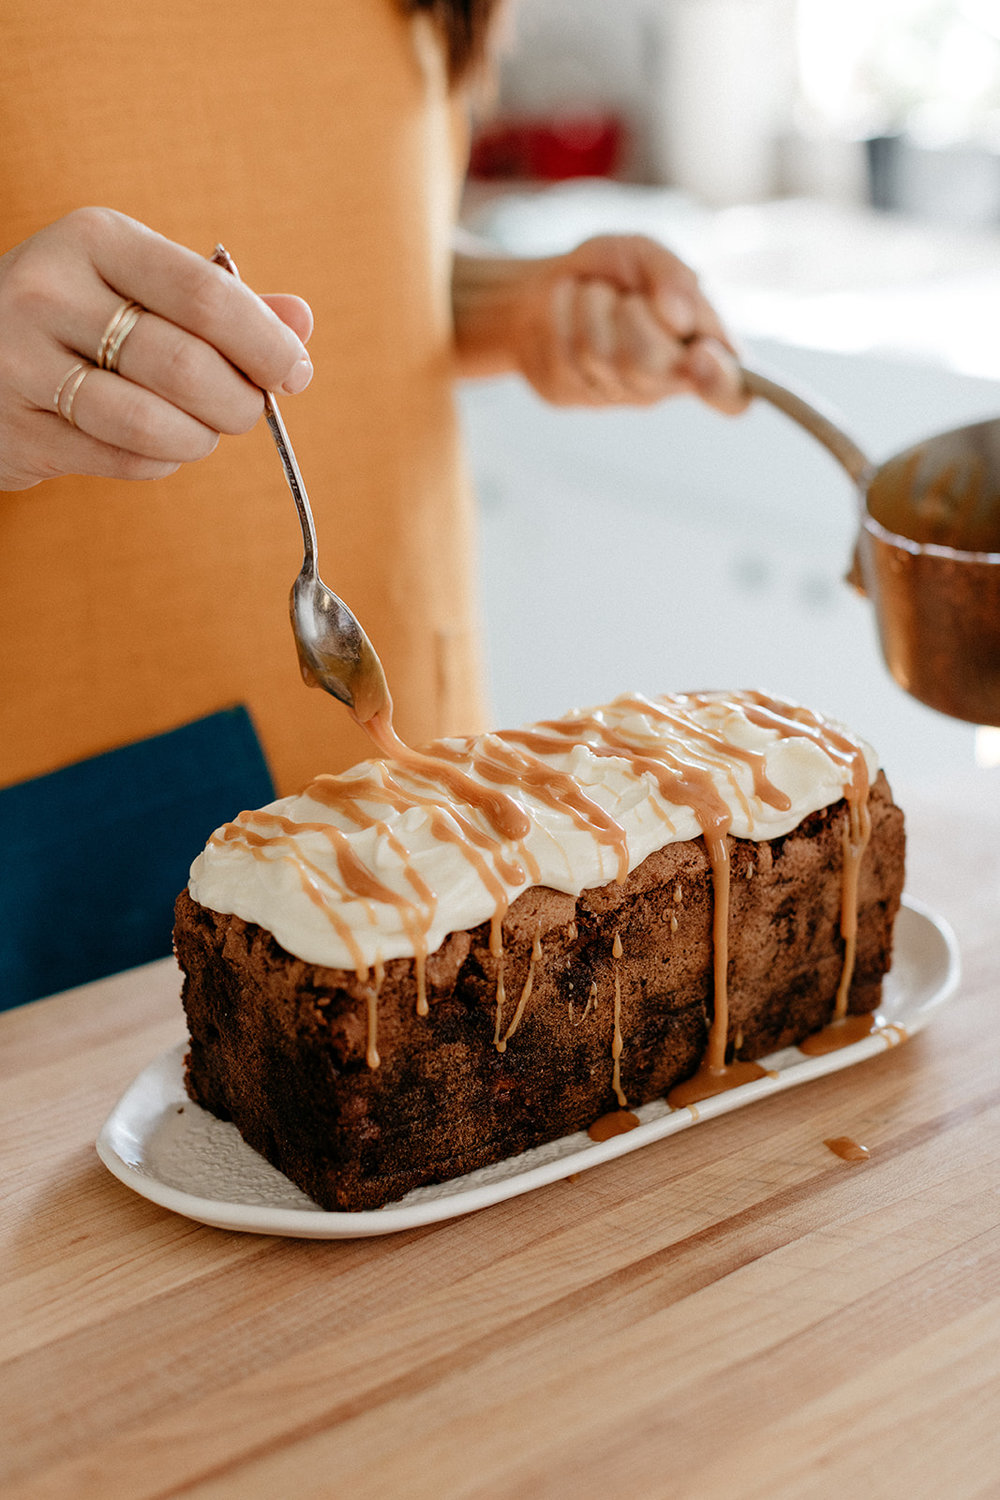 molly-yeh-our-family-caramel-apple-cake-32.jpg